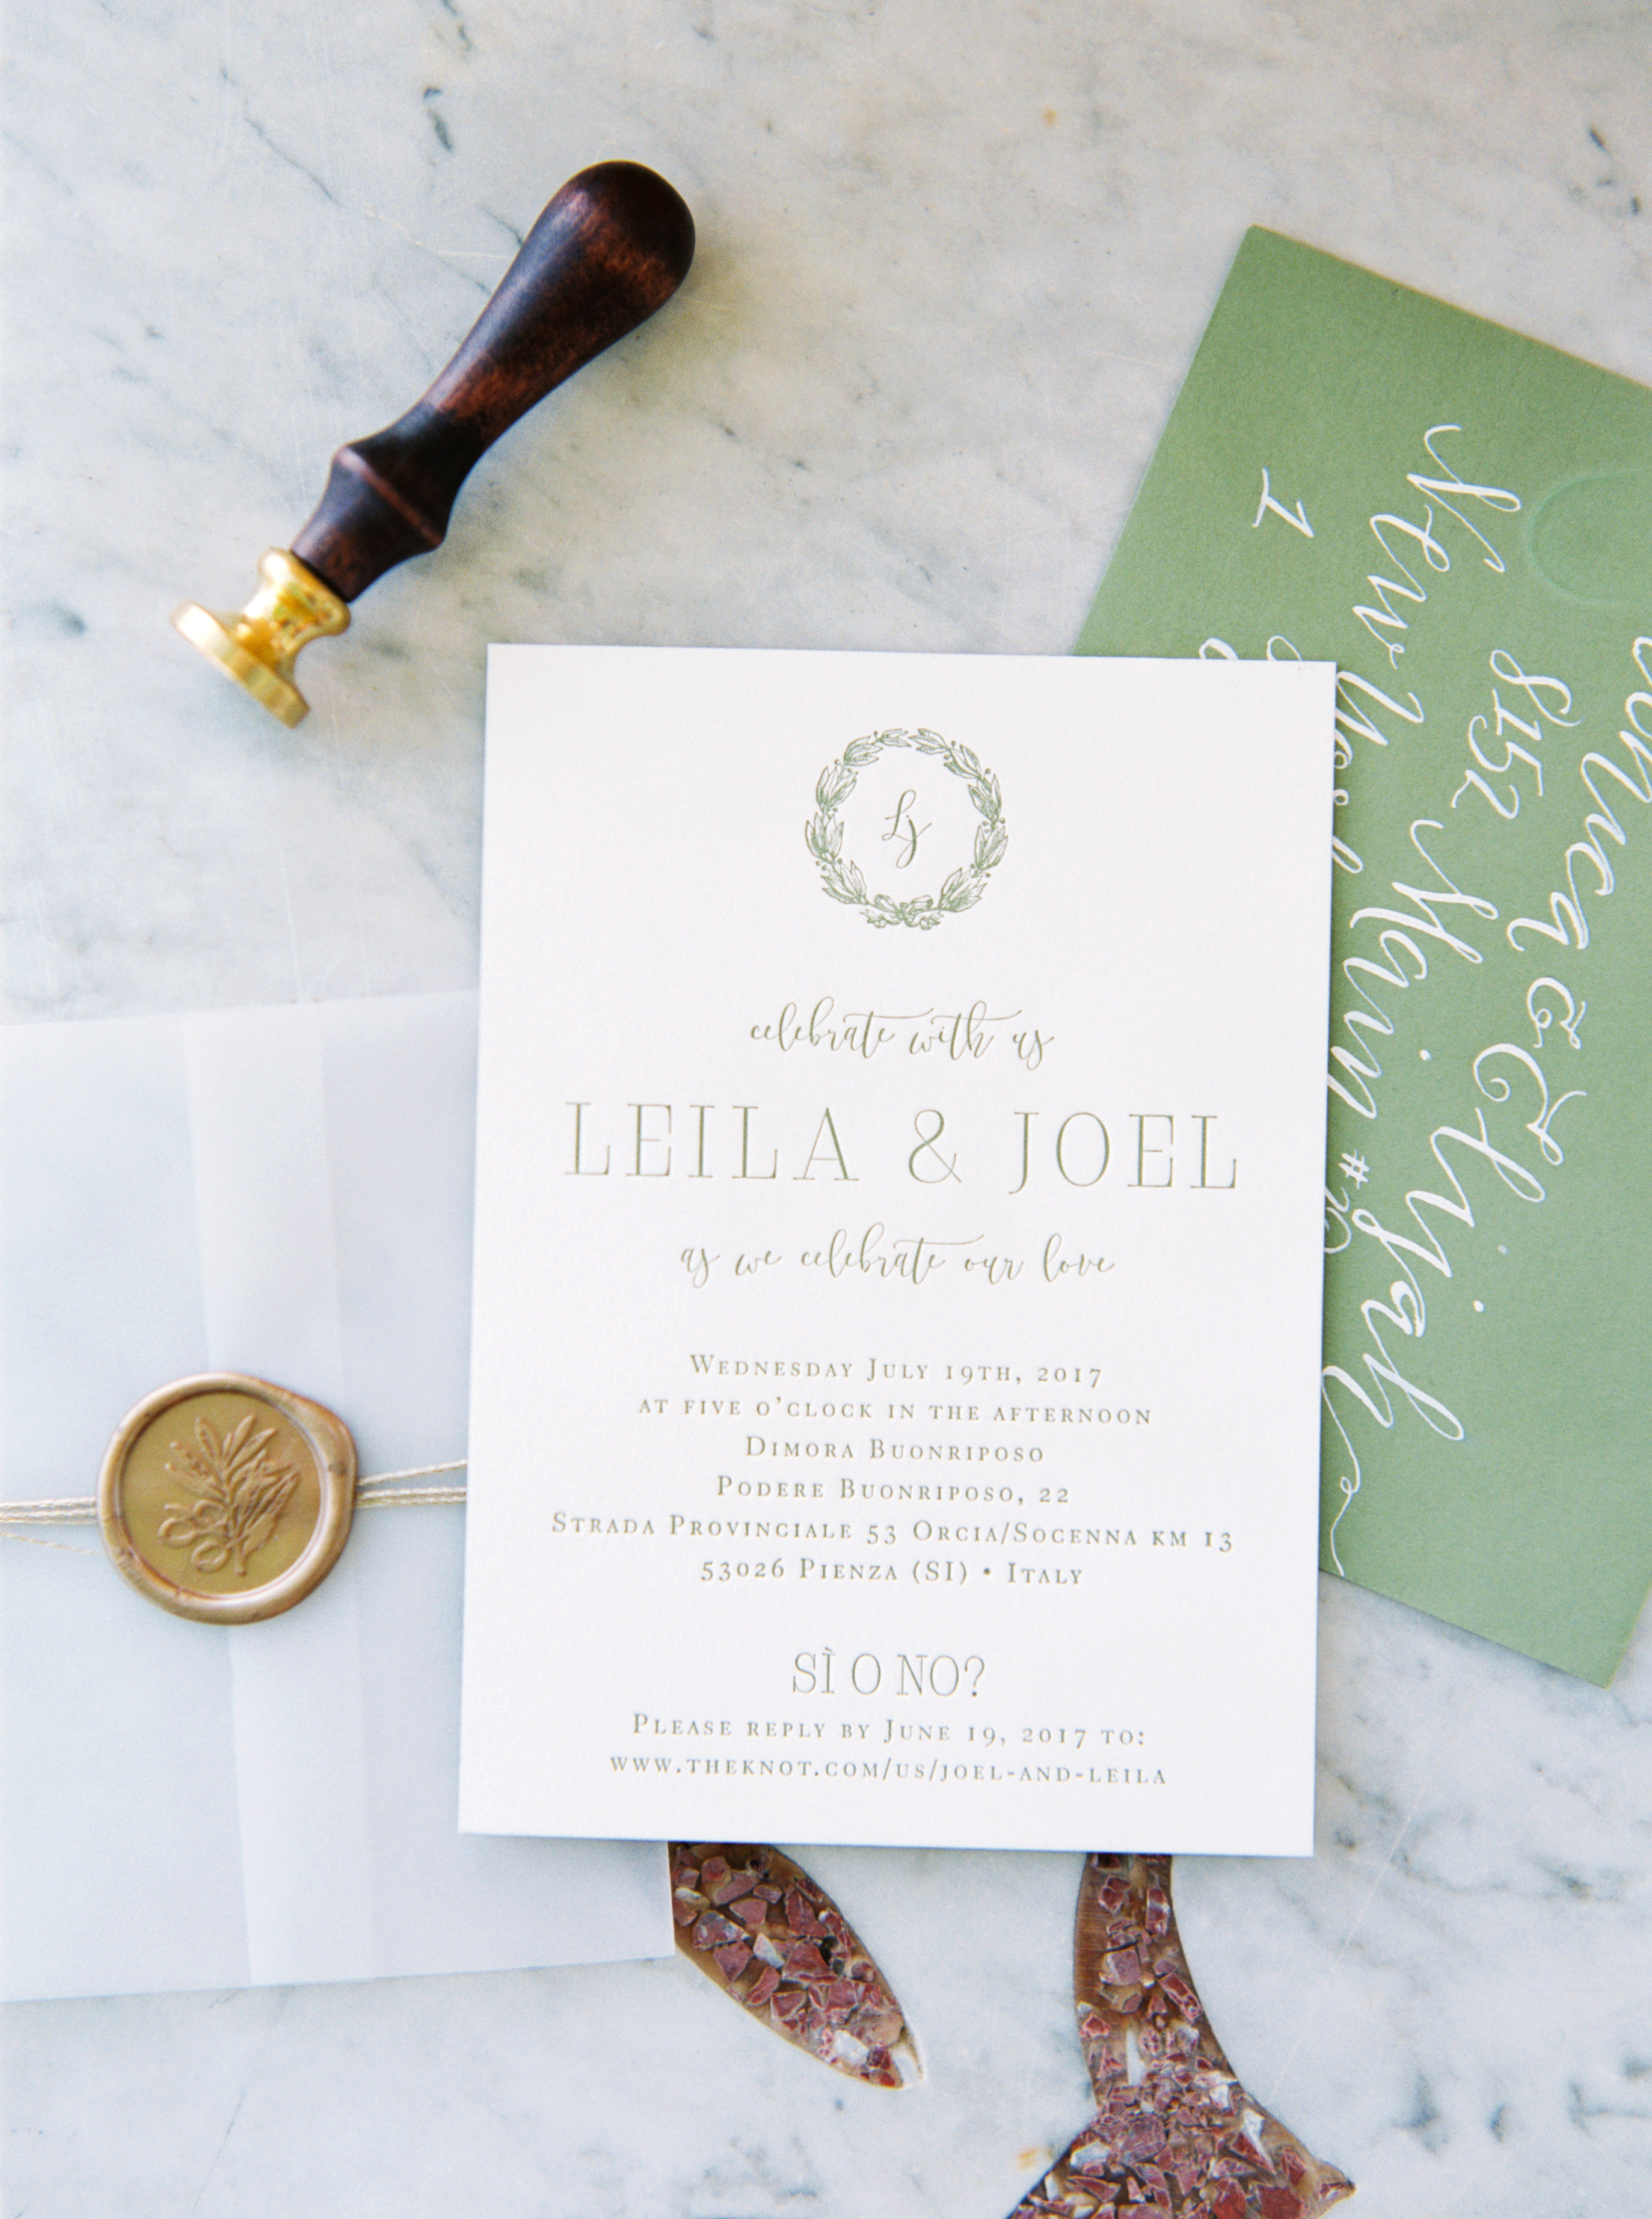 leila joel wedding invitation with seal